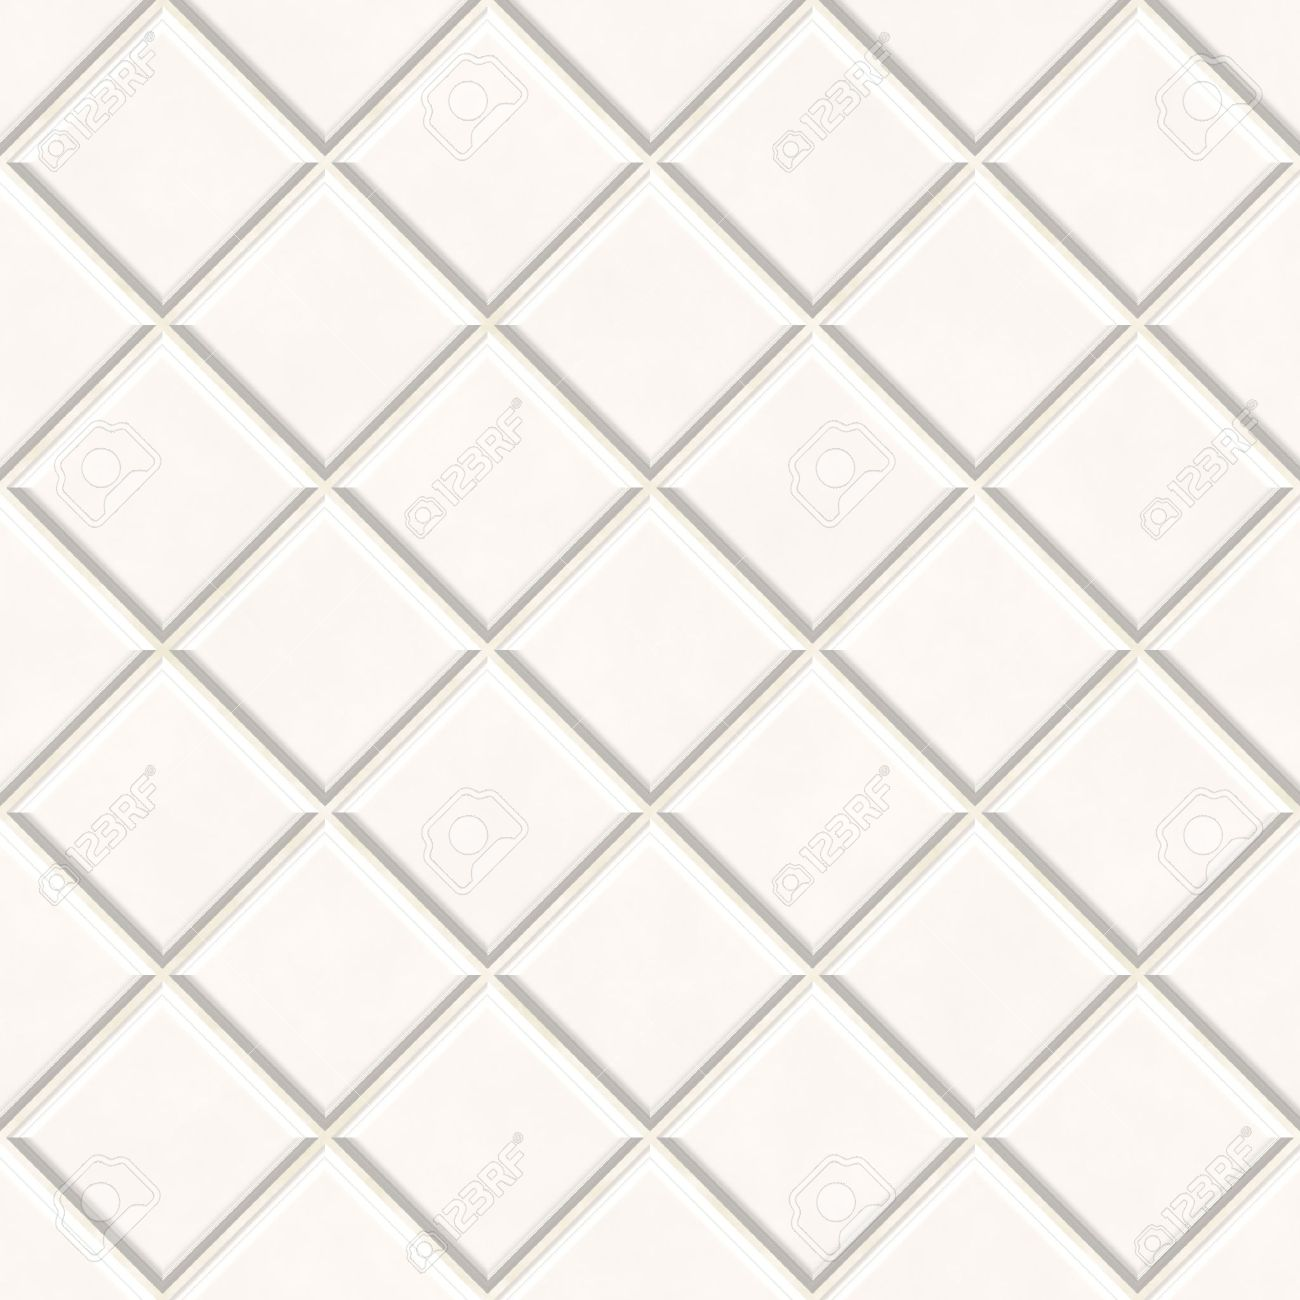 Bathroom Tiles Background seamless white tiles texture background, kitchen or bathroom